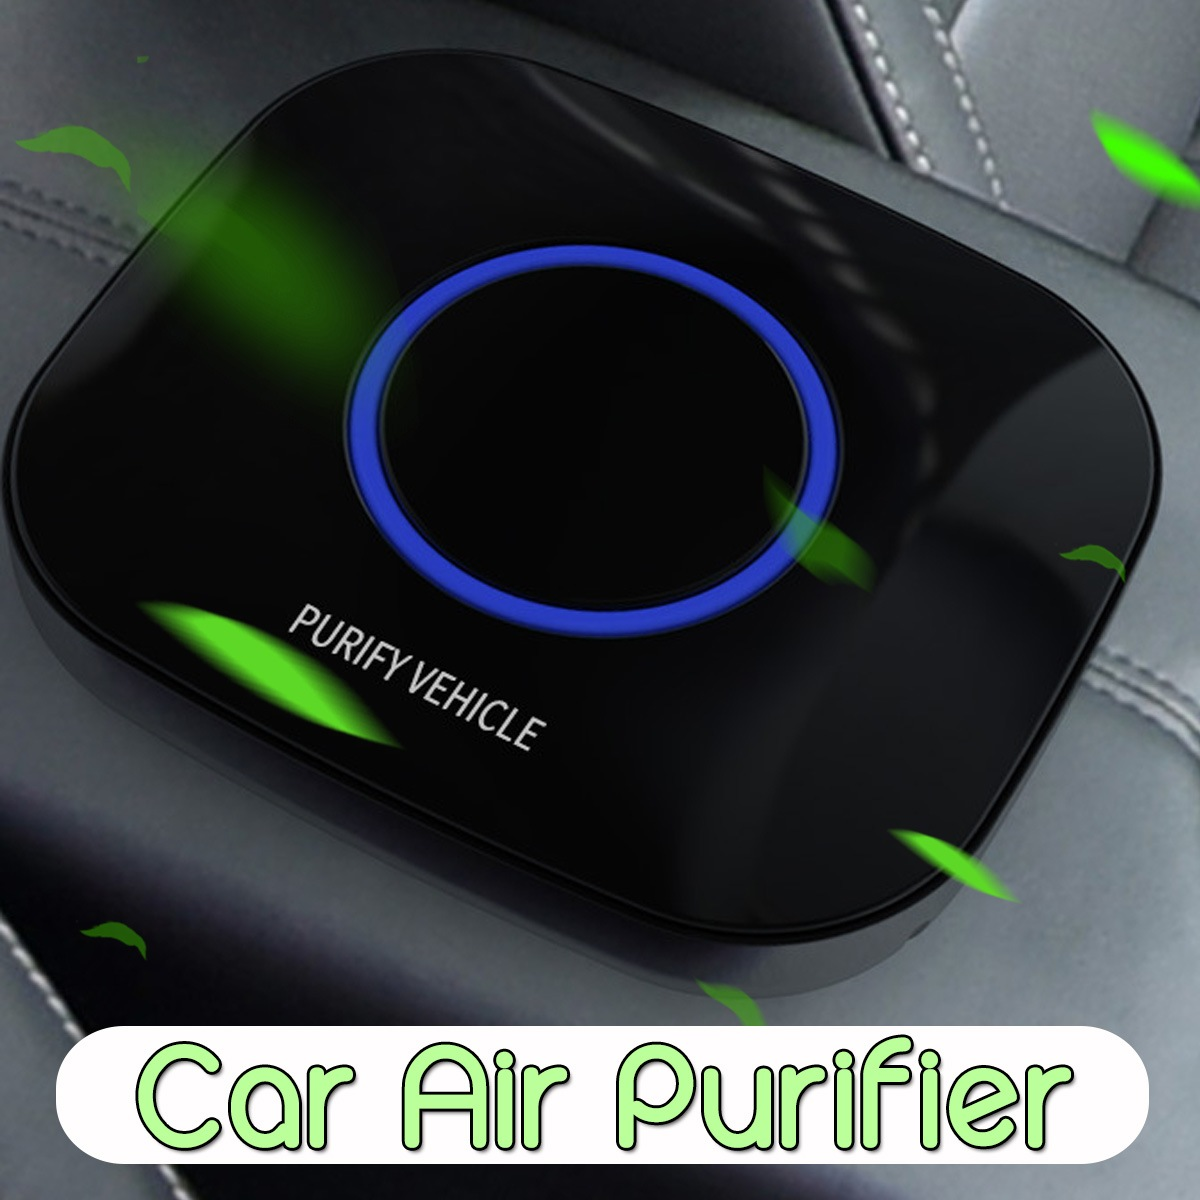 Wholesale Car Air Purifier with Filter Formaldehyde Freshener Cigarette Smoke Vehicle Smart Purifying - Black